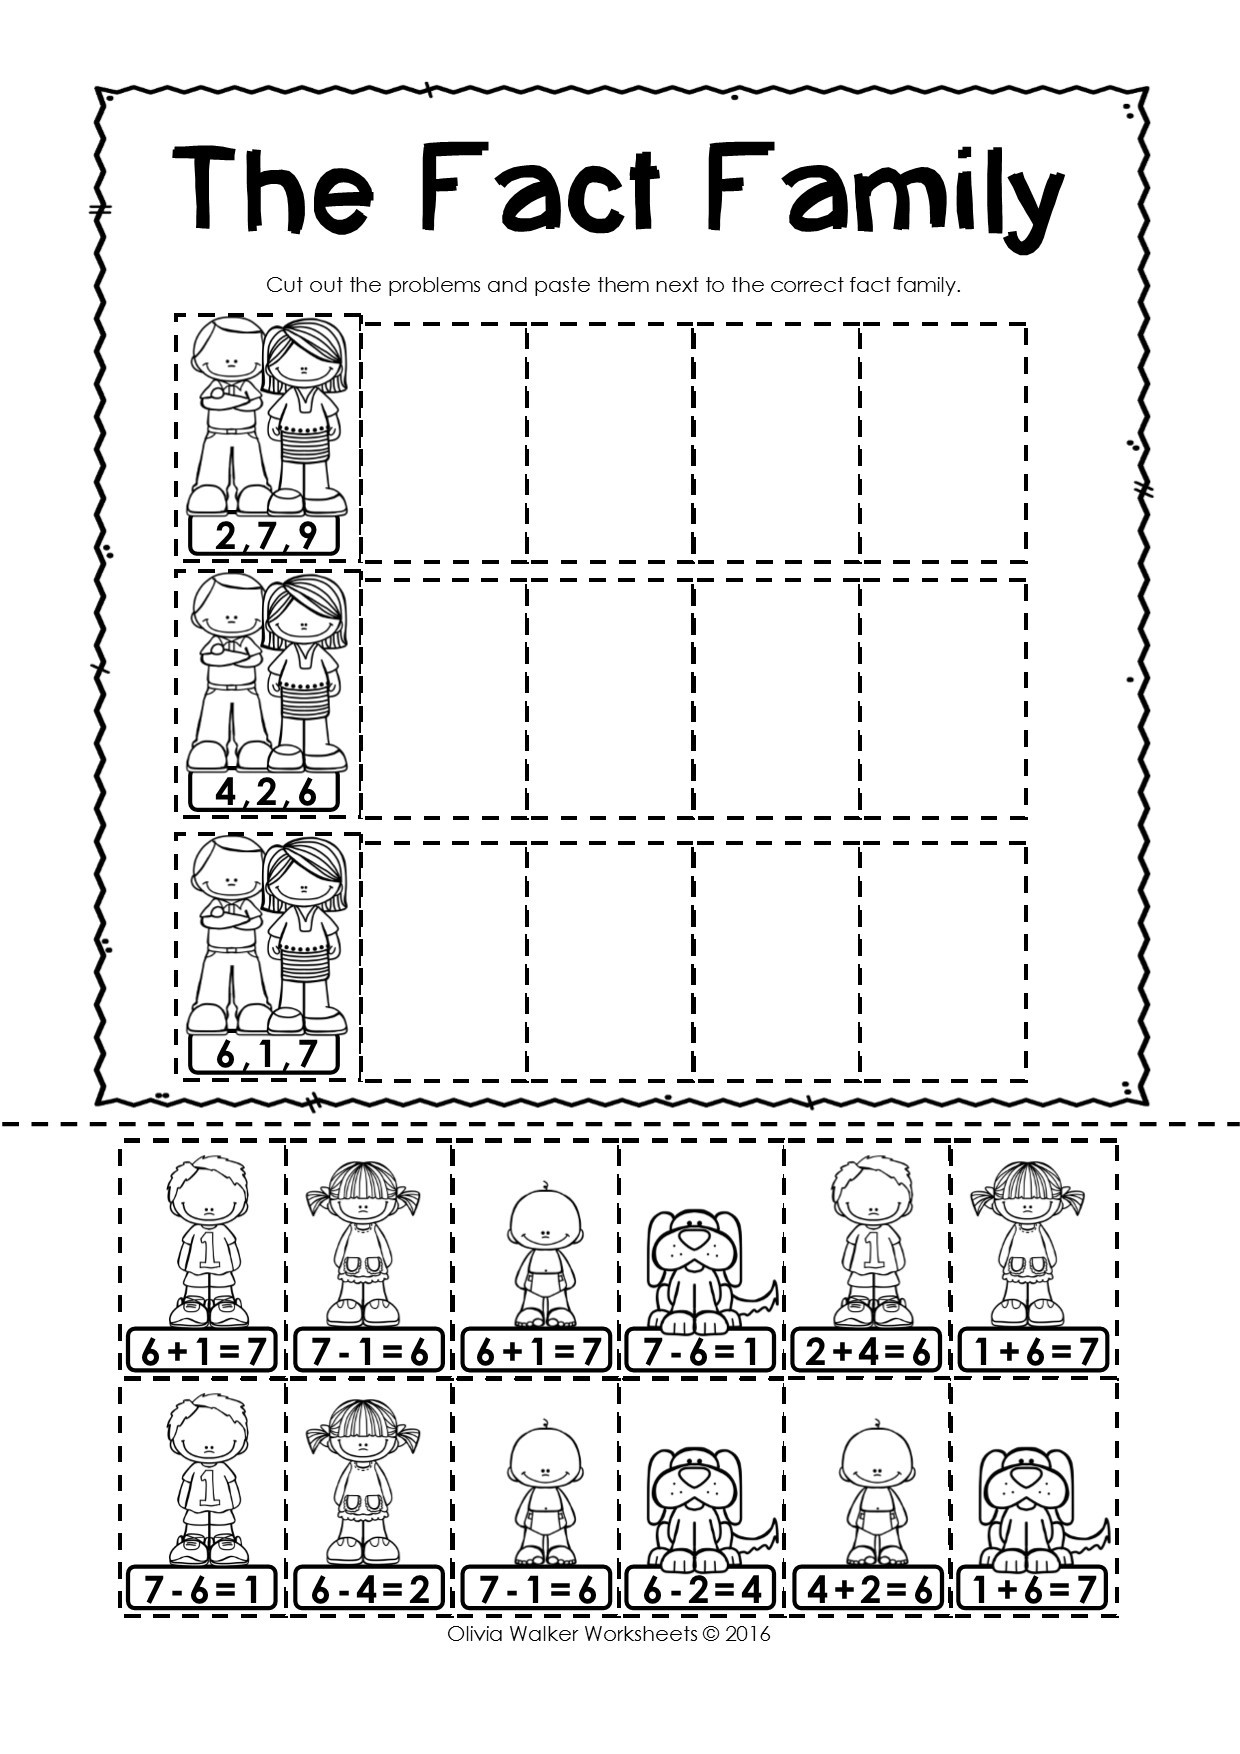 Word Family Worksheet Kindergarten Worksheet Munity Workers Right Age for